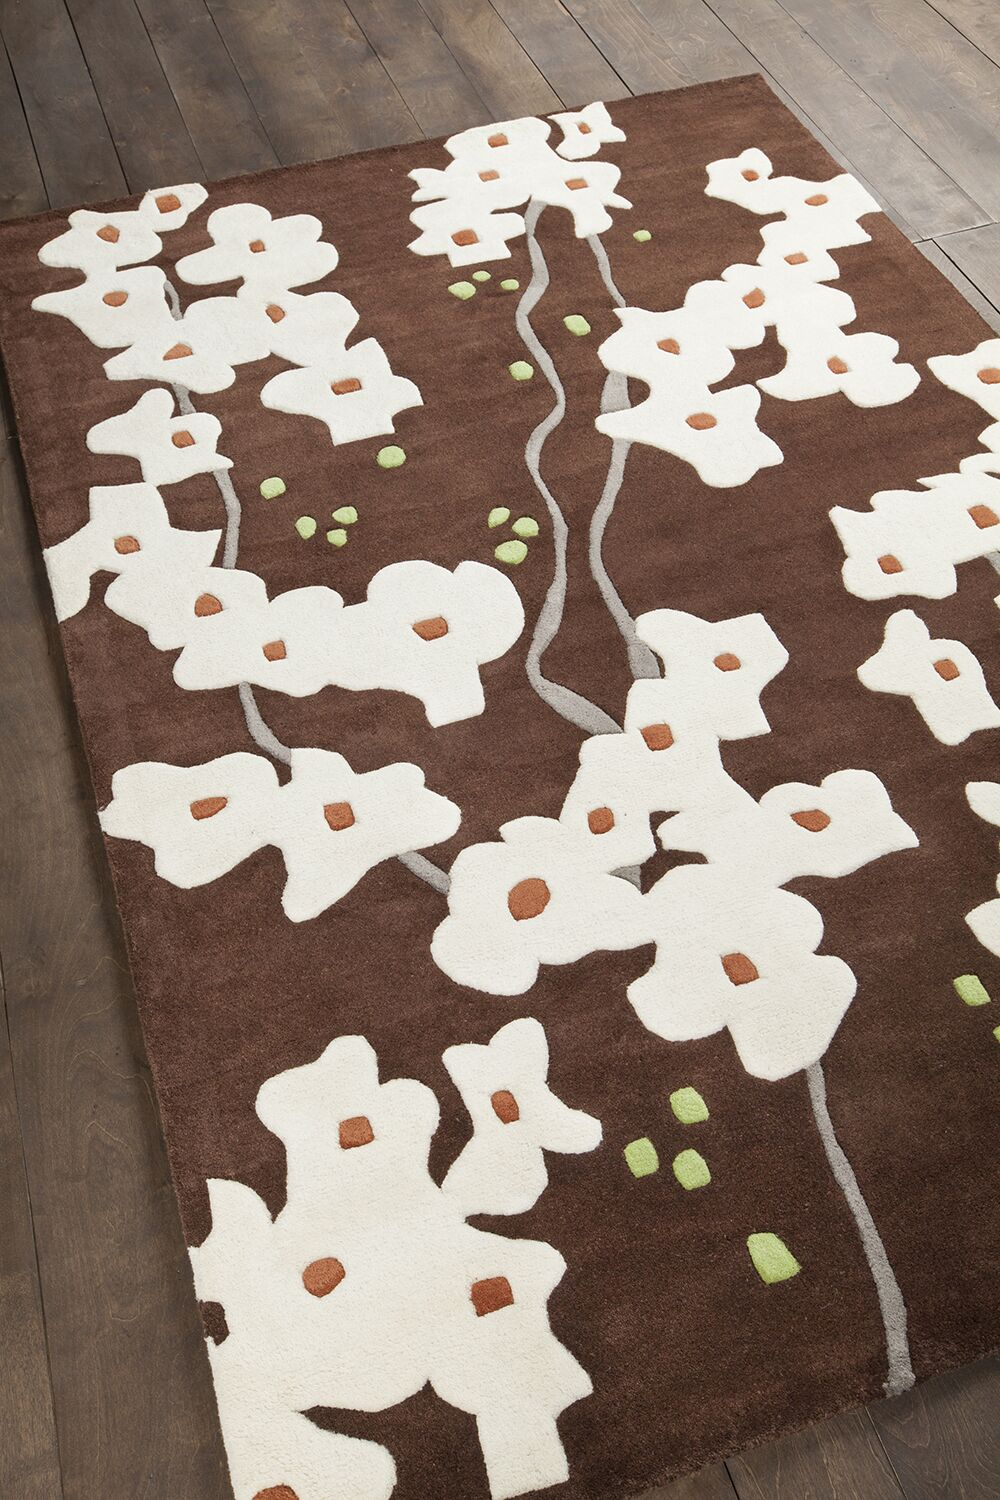 Stoltz Dark Brown/Ivory Area Rug Rug Size: 5' x 7'6